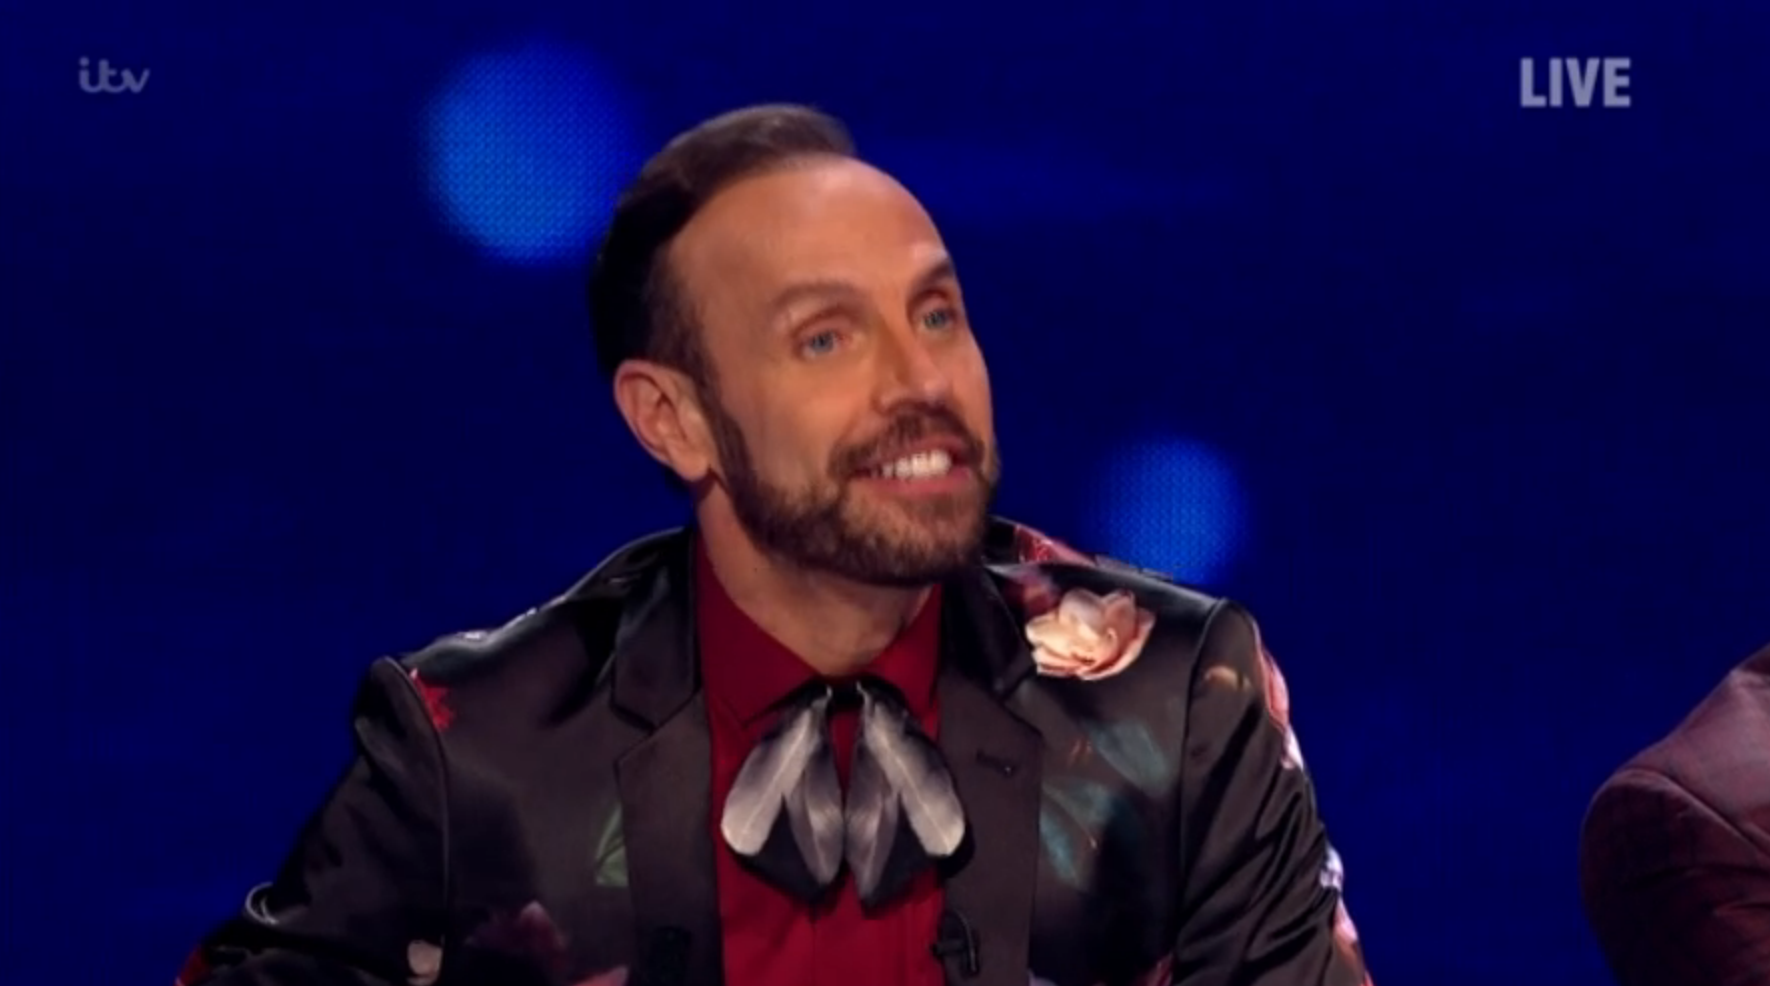 Dancing On Ice fans ridicule Jason Gardiner for hilarious reason